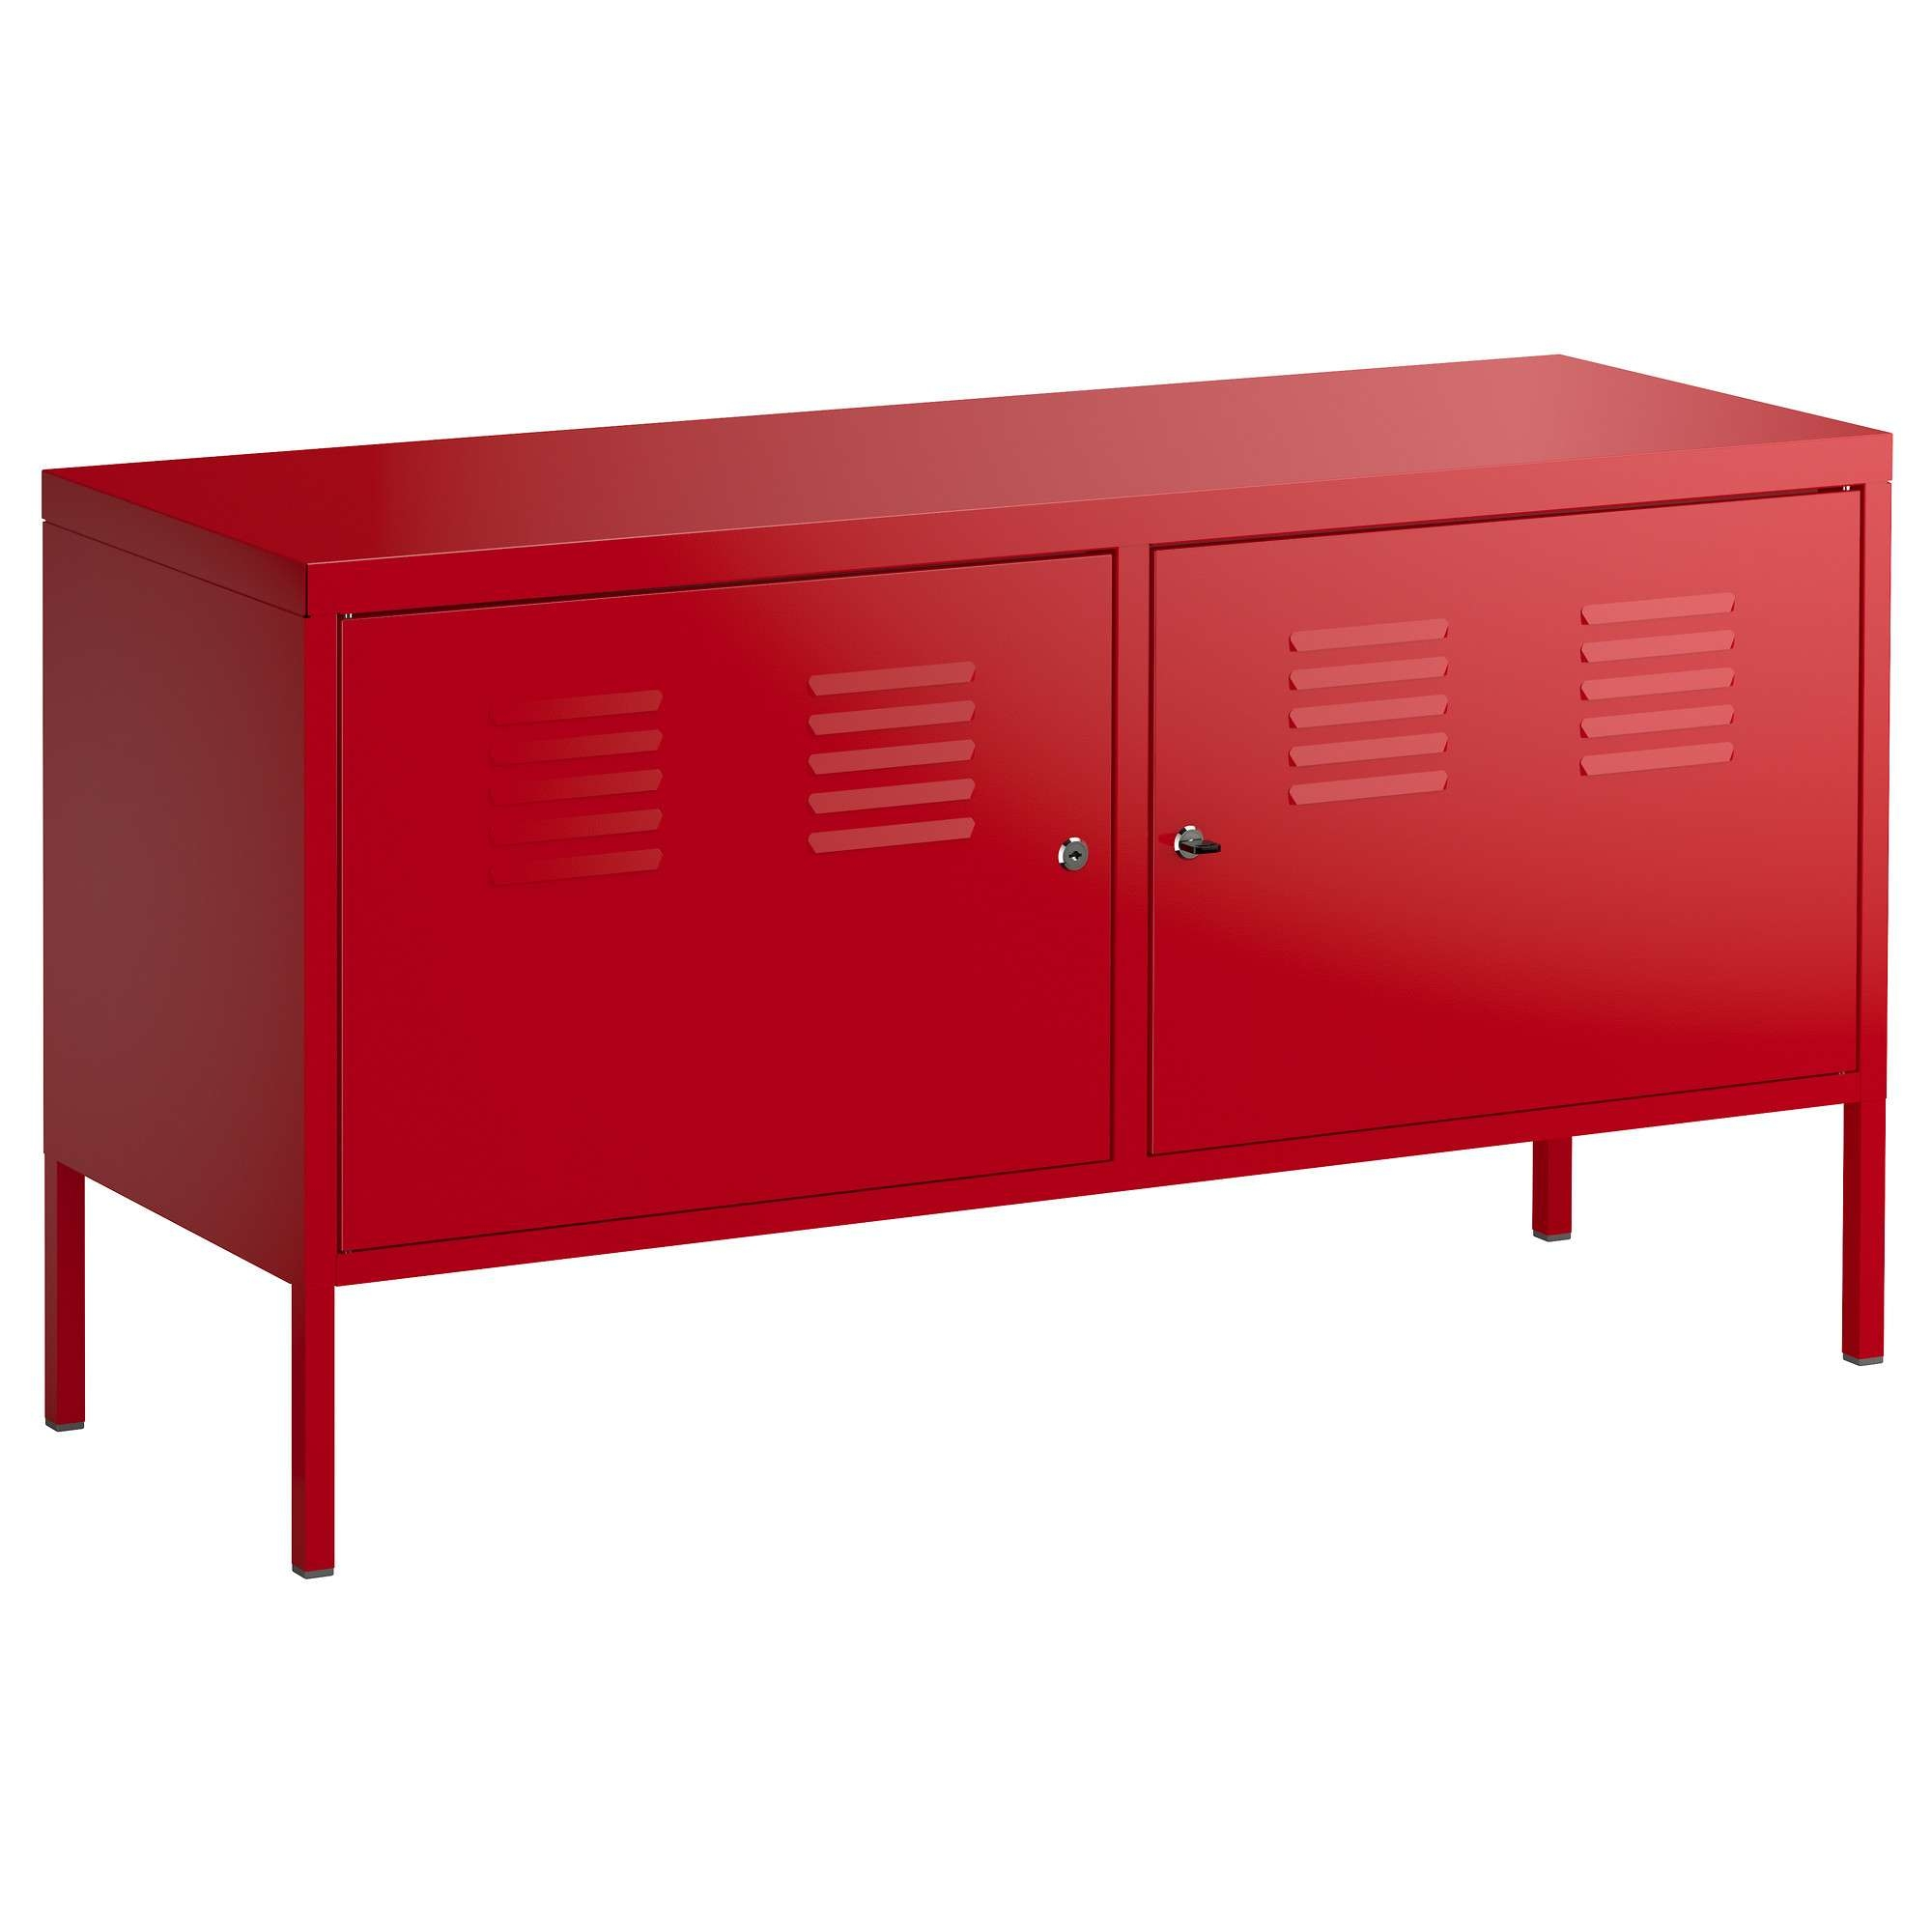 Ikea Ps Cabinet – Red – Ikea Inside Ikea Sideboards (View 15 of 20)